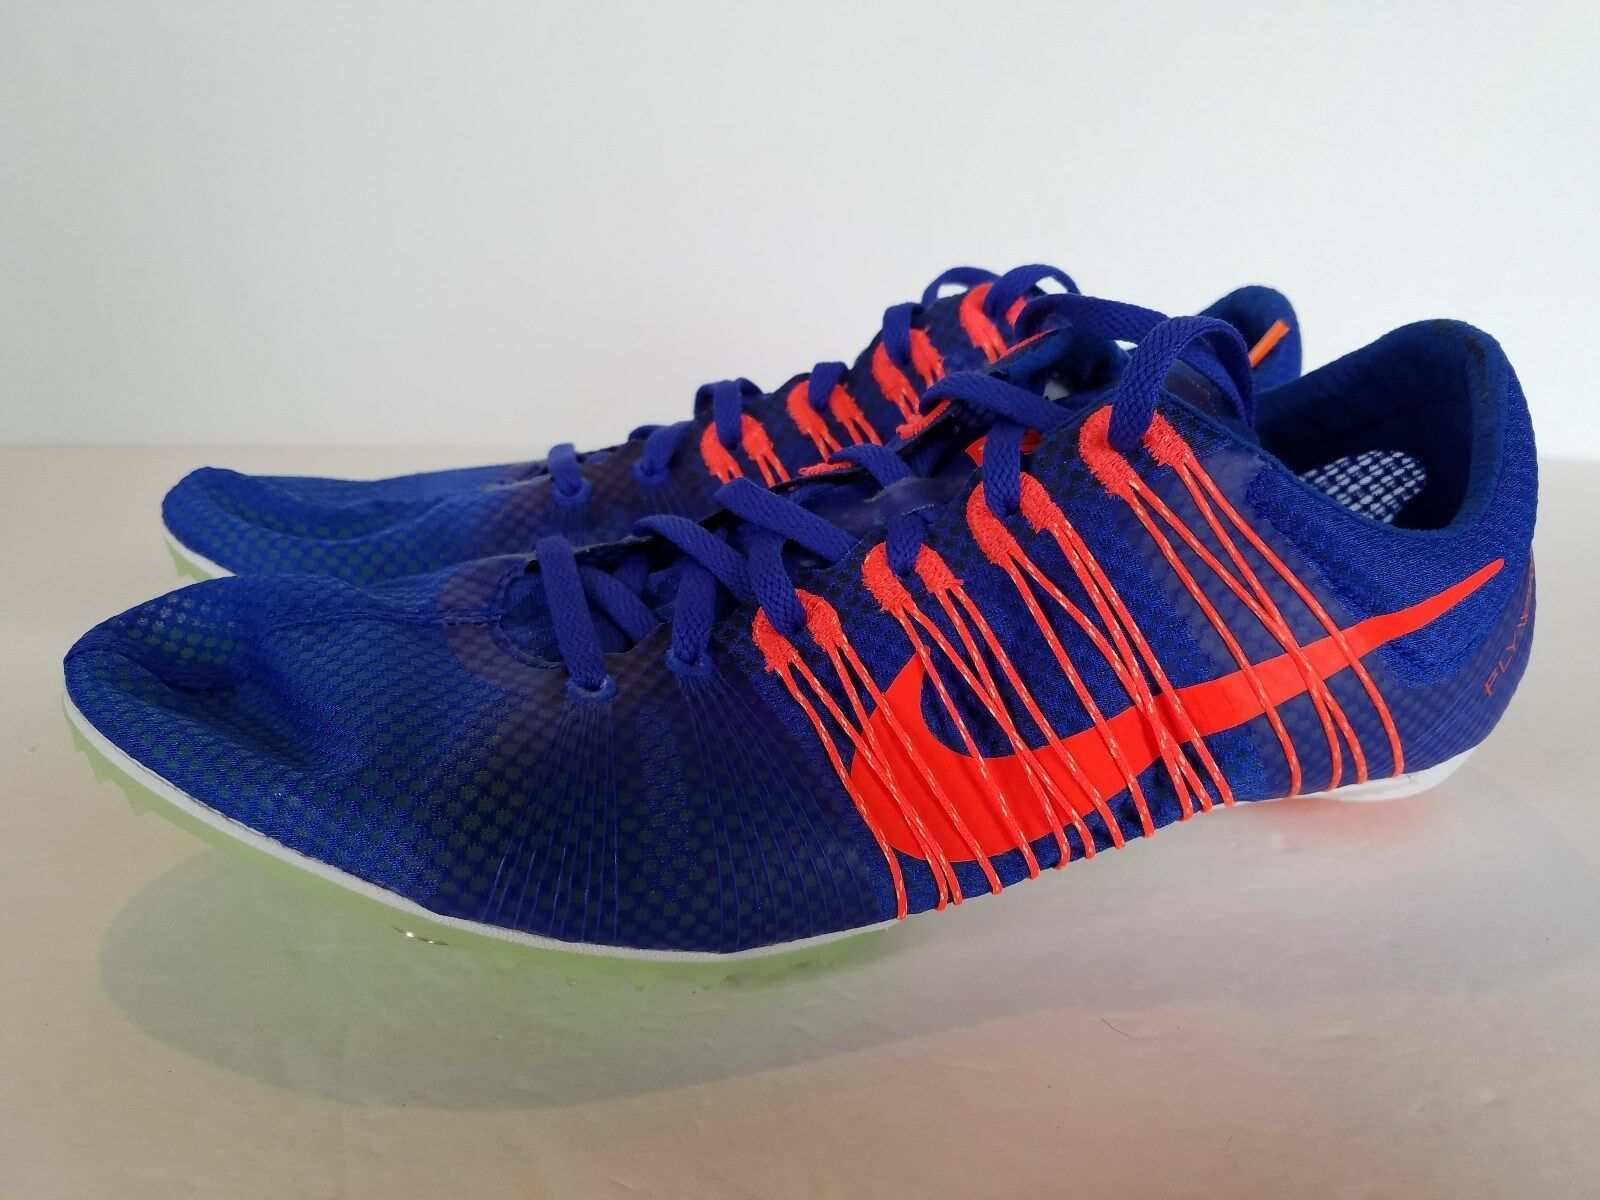 Nike Zoom Victory 2 Flywire Track Spikes Distance Shoes 555365 487